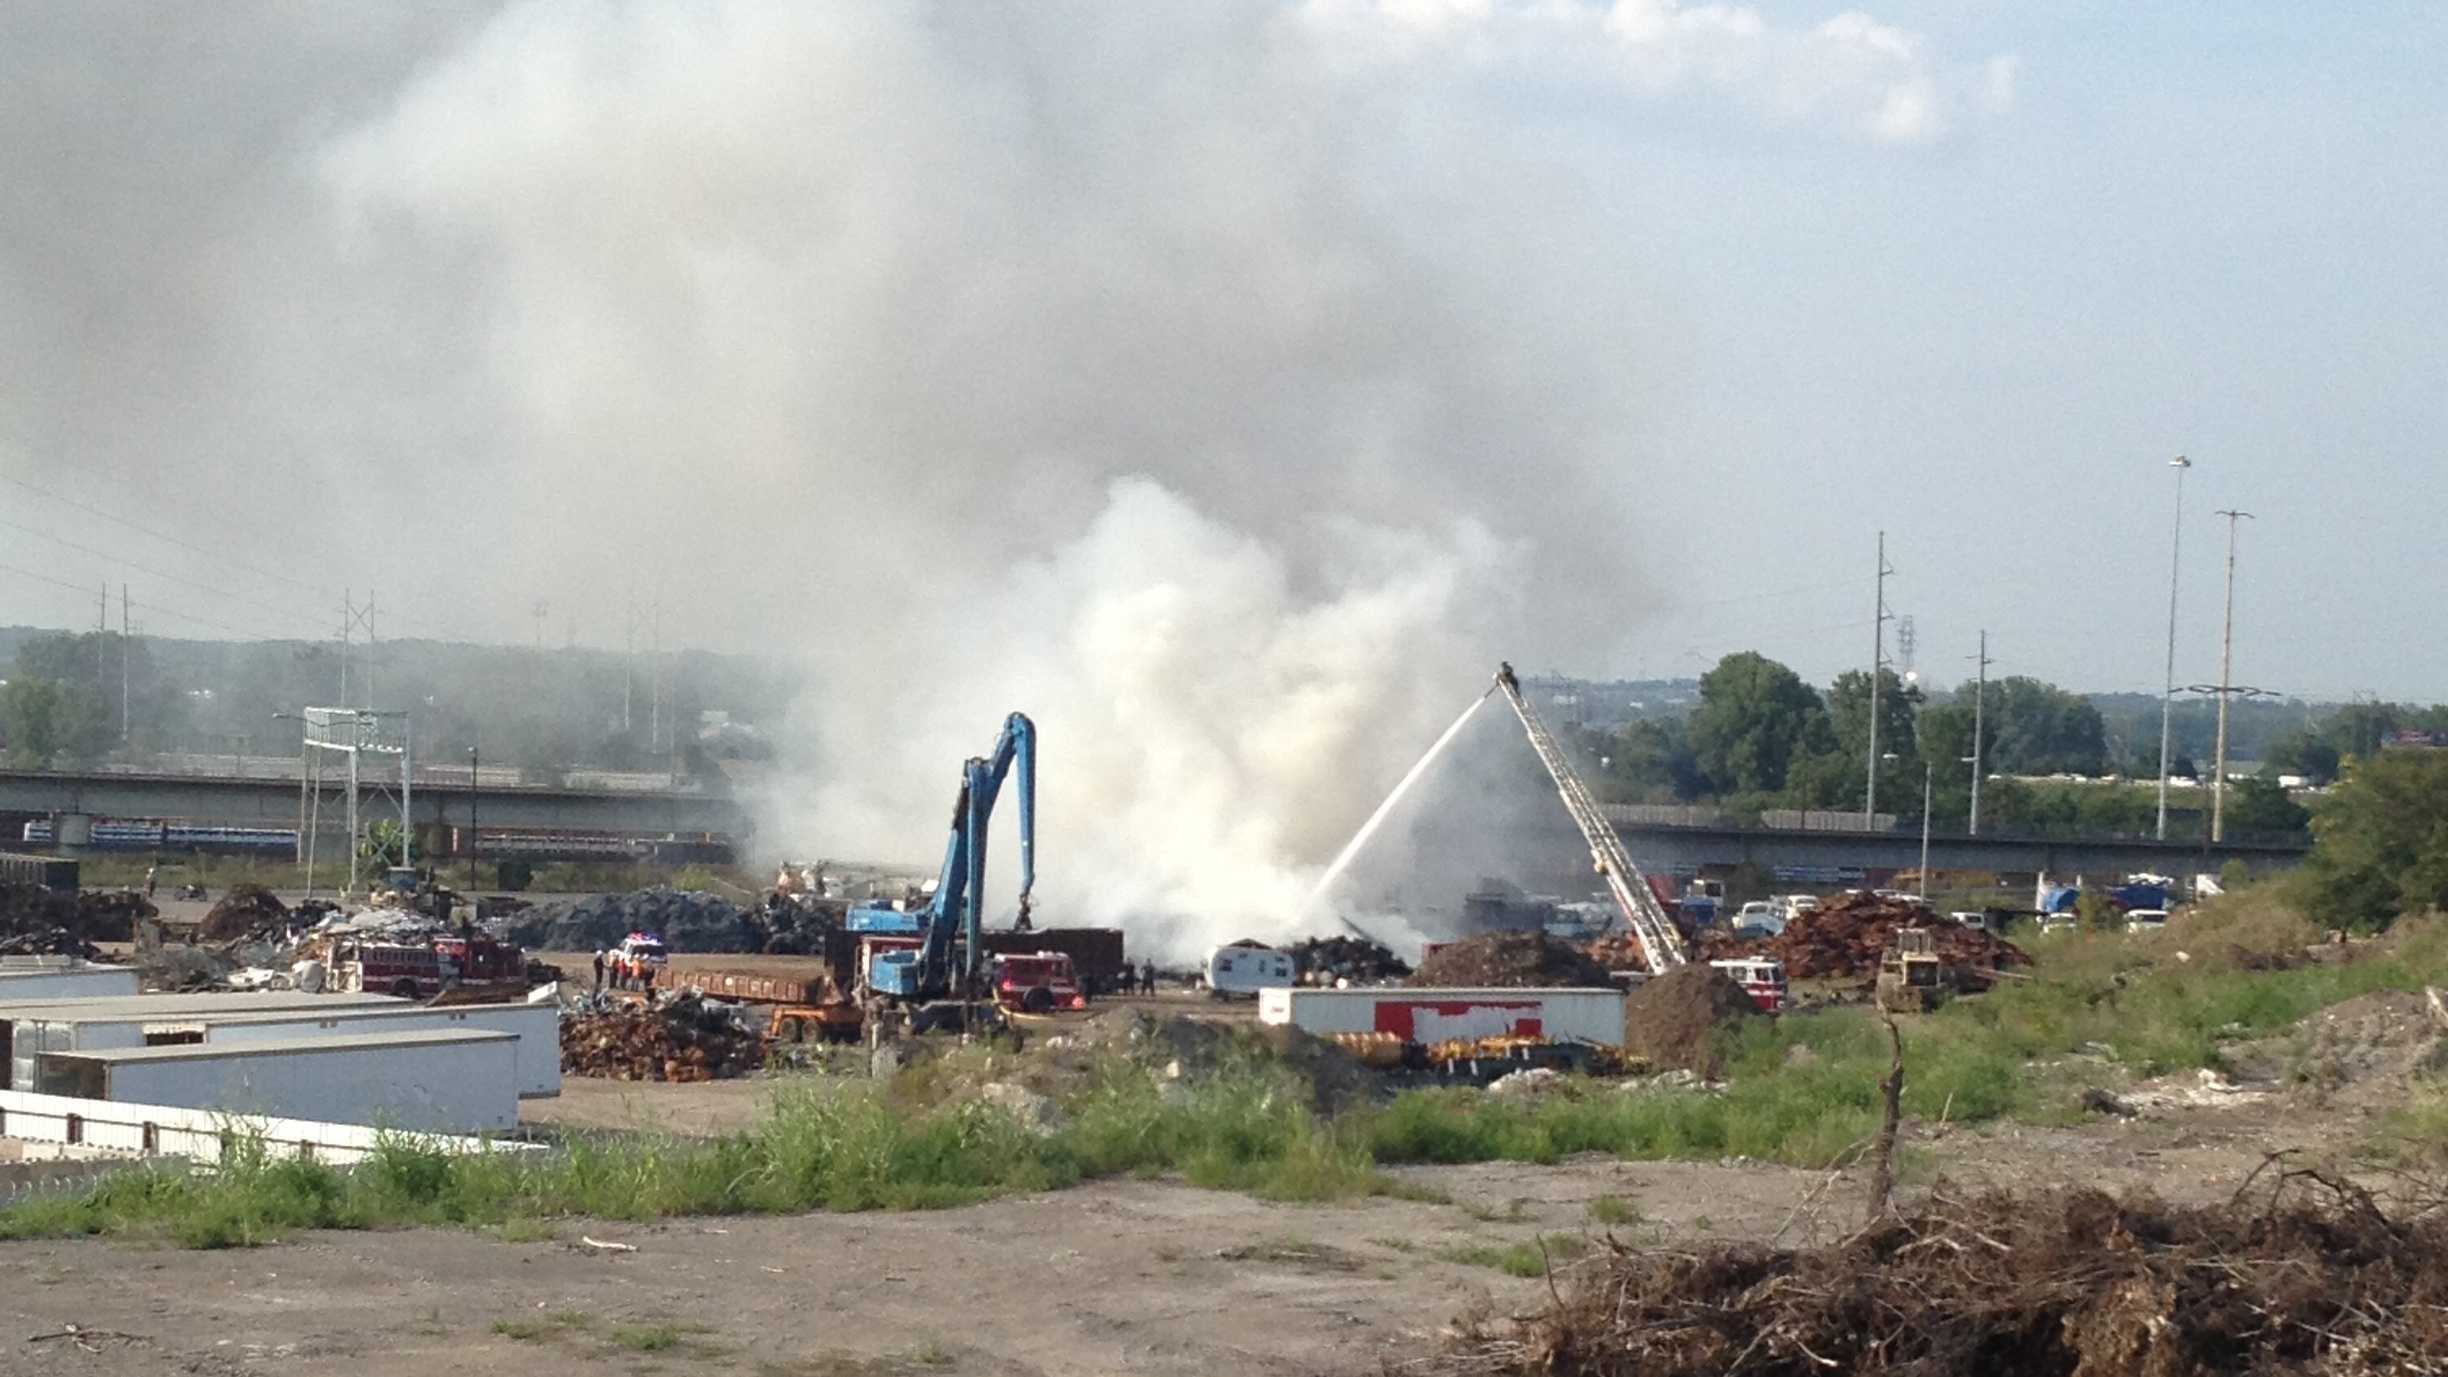 Tire fire burns at scrapyard off of I-435